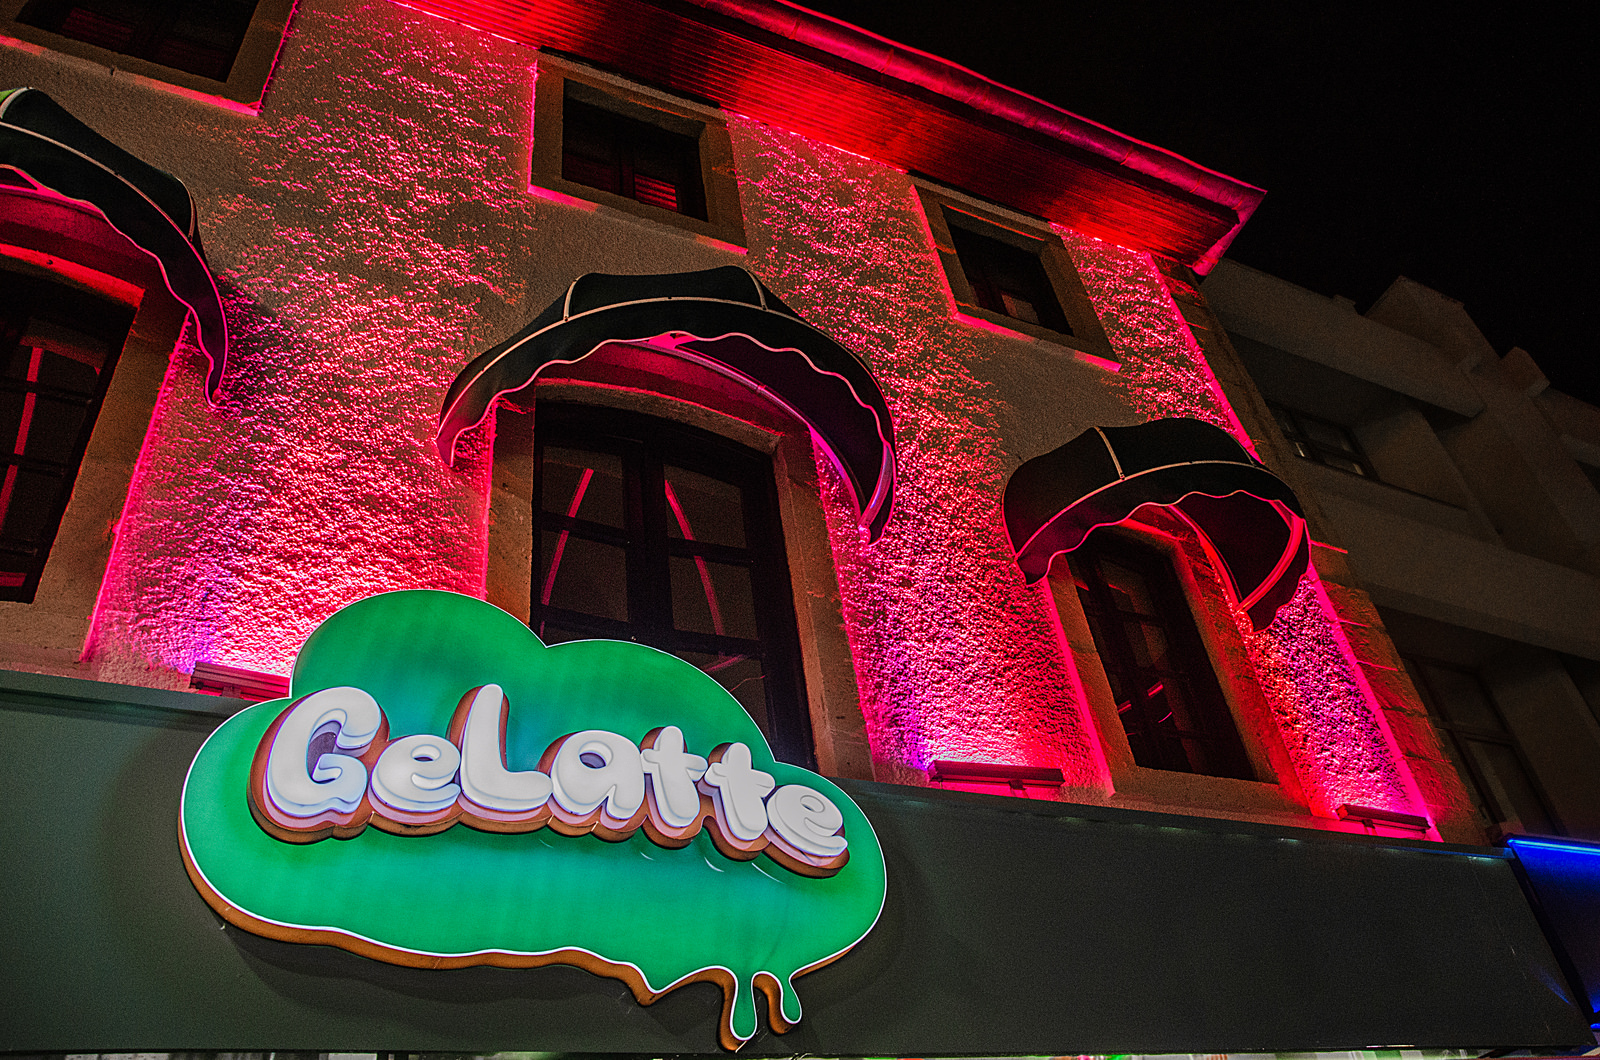 A photo of the GeLatte sign at night.